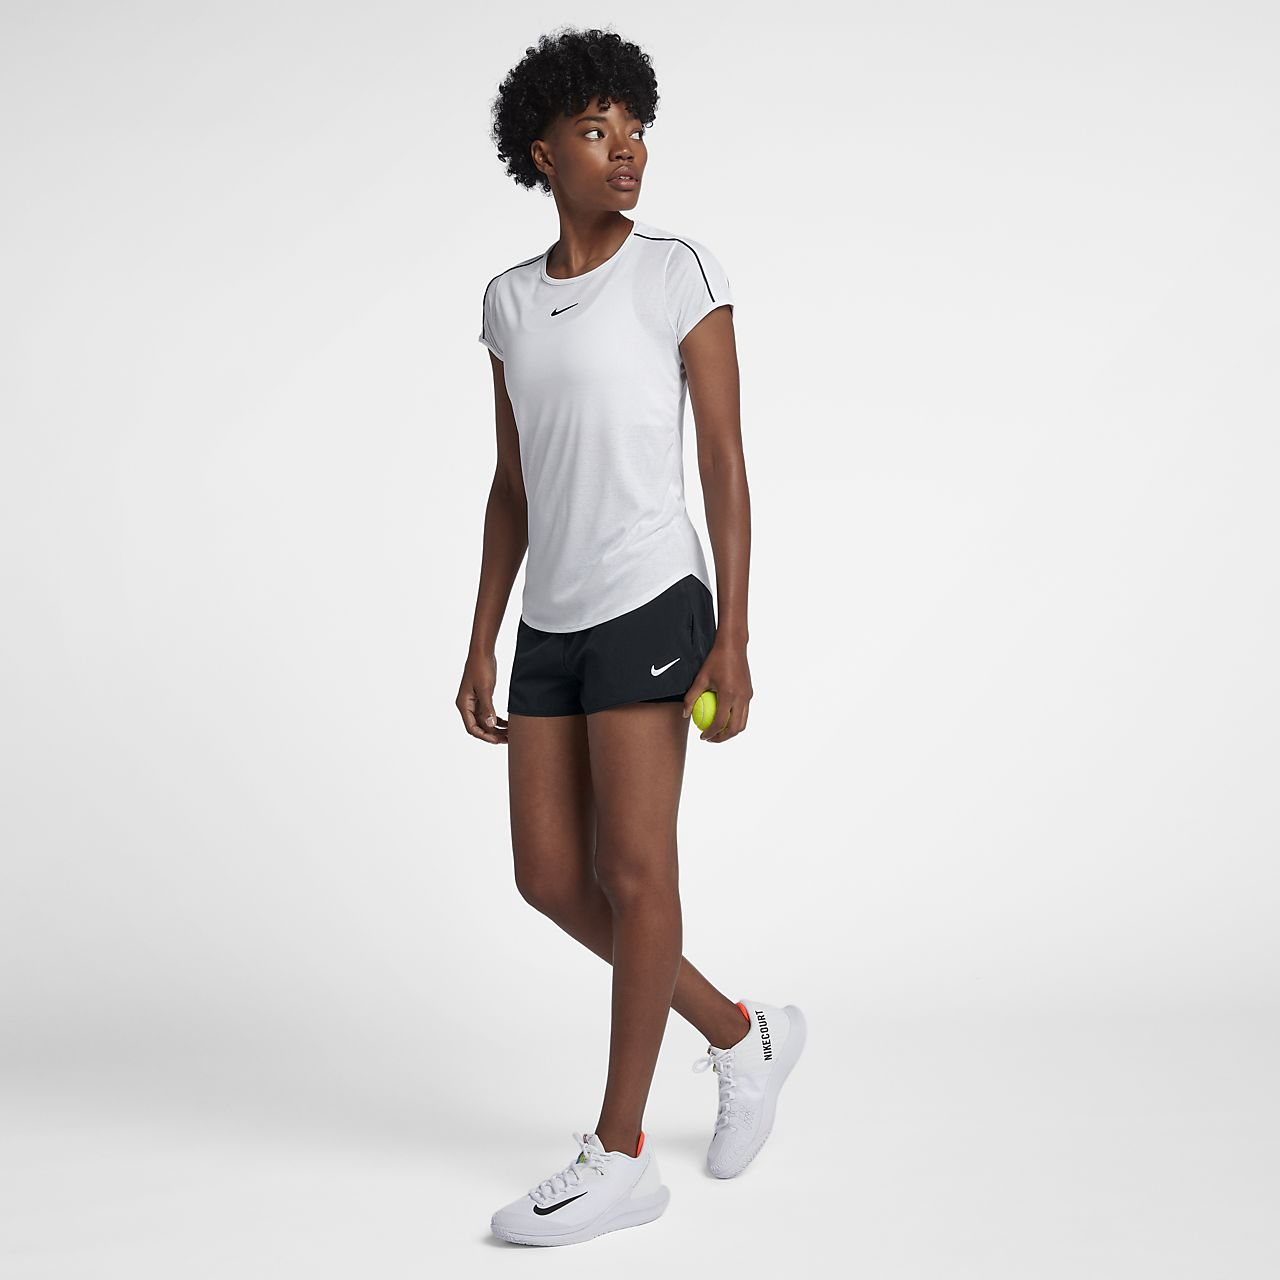 48da2f83a898 Low Resolution NikeCourt Flex Women s Tennis Shorts NikeCourt Flex Women s  Tennis Shorts